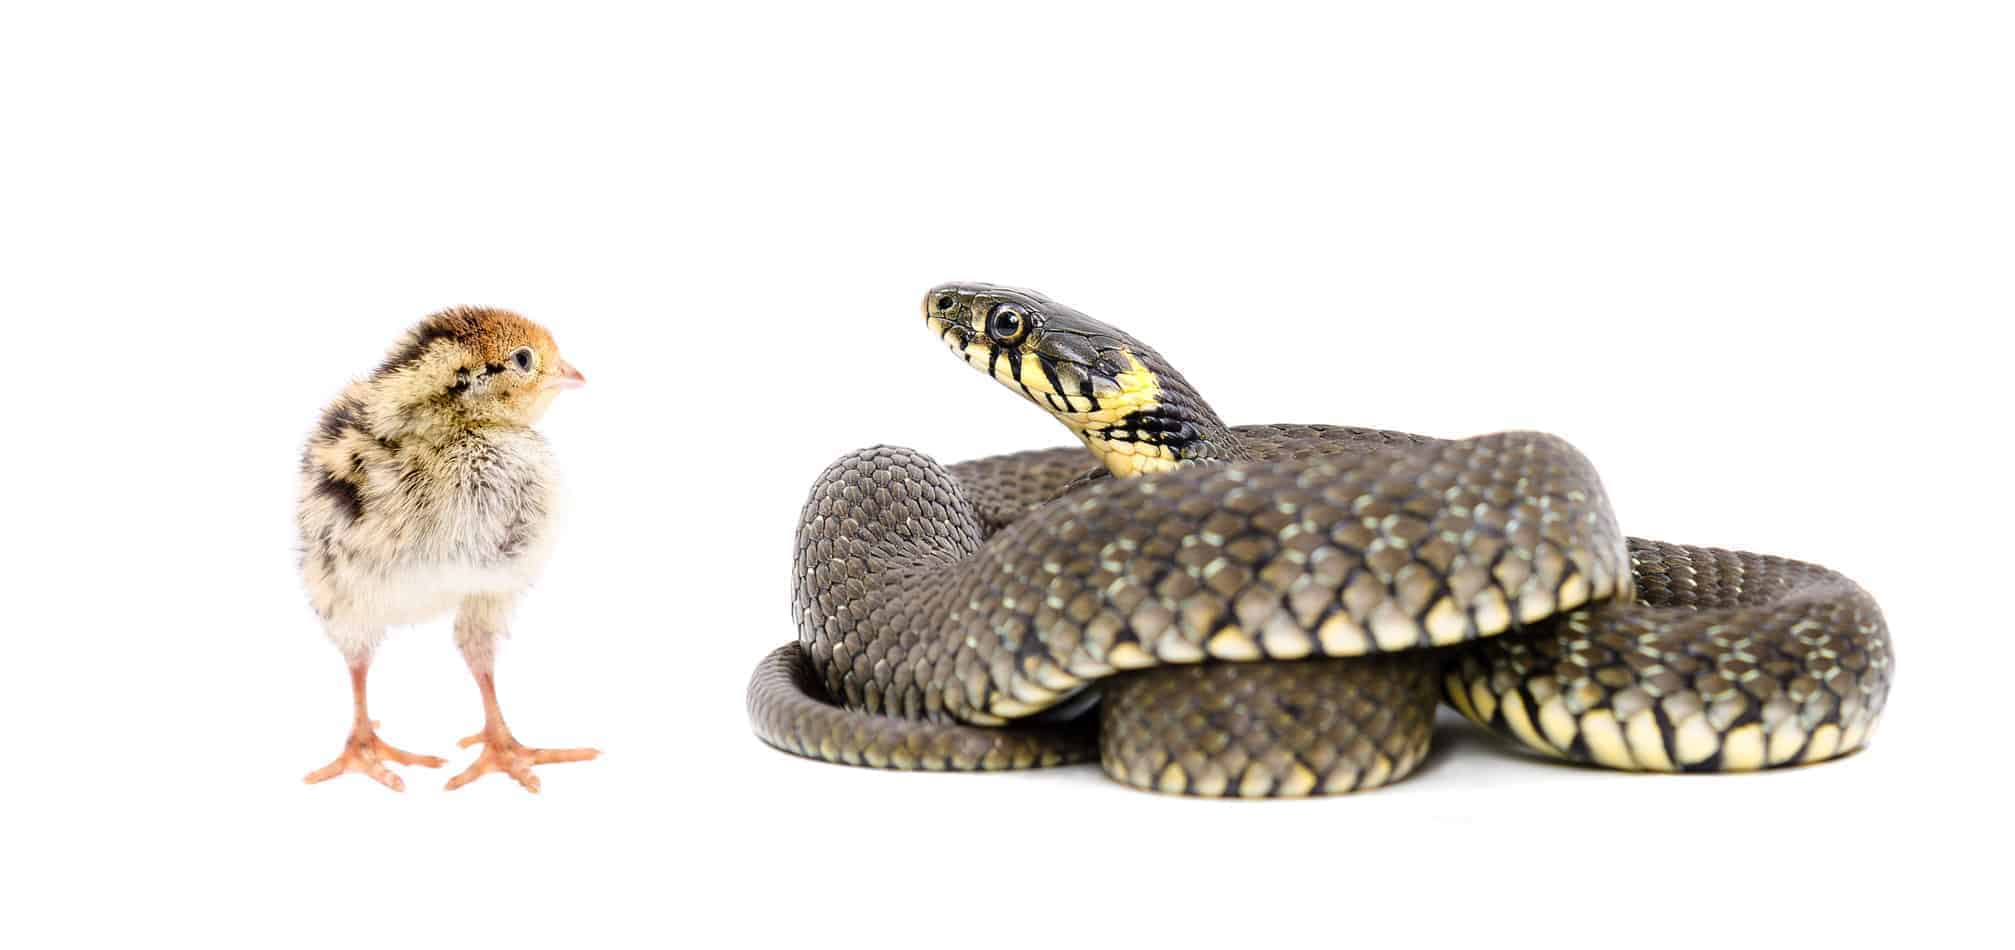 Can Pet Snakes Eat Chicken?